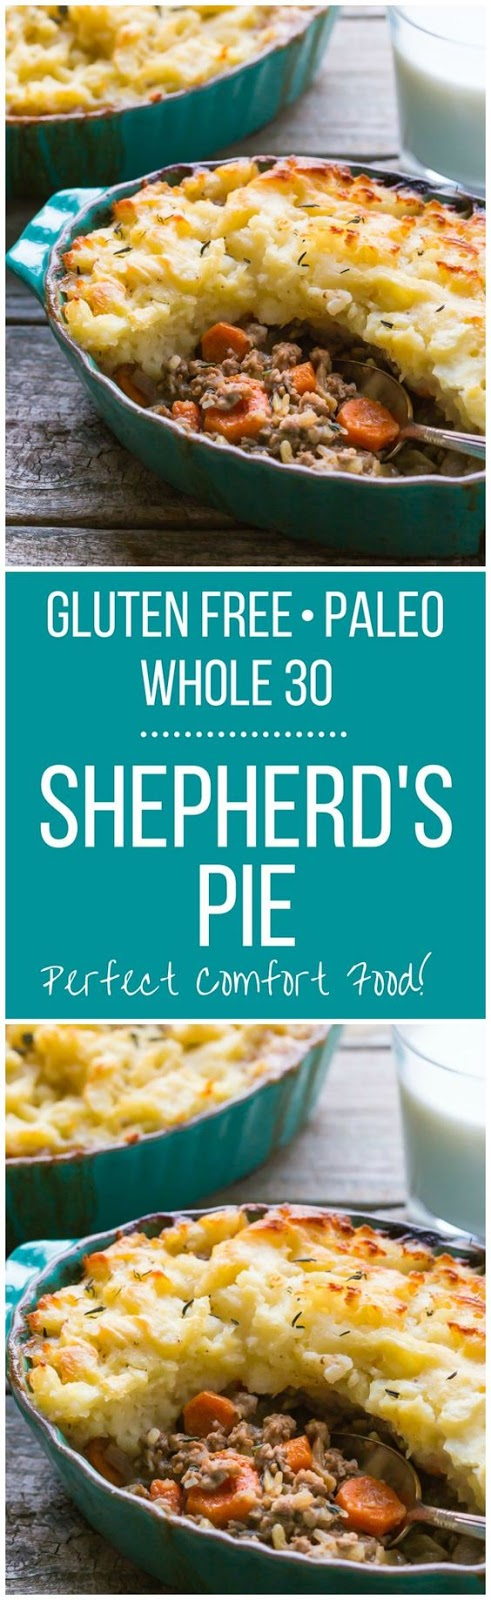 GLUTEN FREE SHEPHERDS PIE